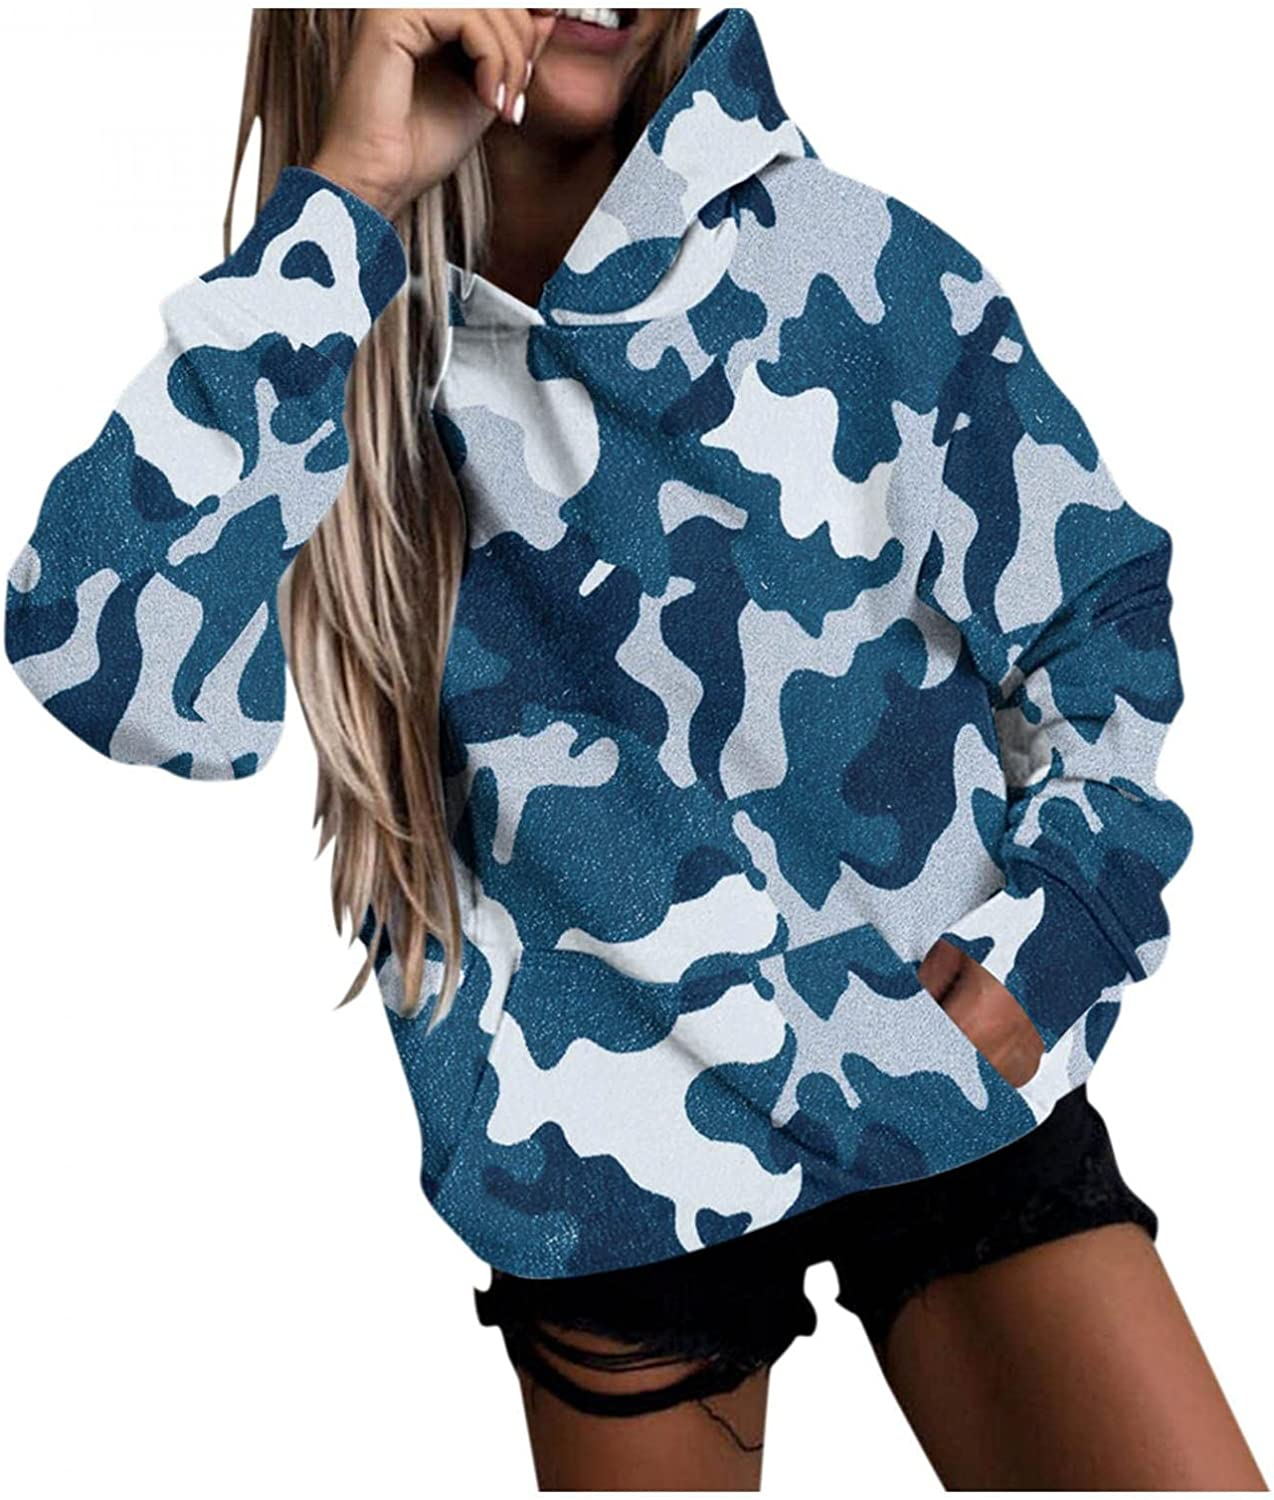 Haheyrte Womens Hoodies Animal Print Long-sleeved Hooded Sweatshirts Casual Blouse Pullover Tops Shirts Sweaters